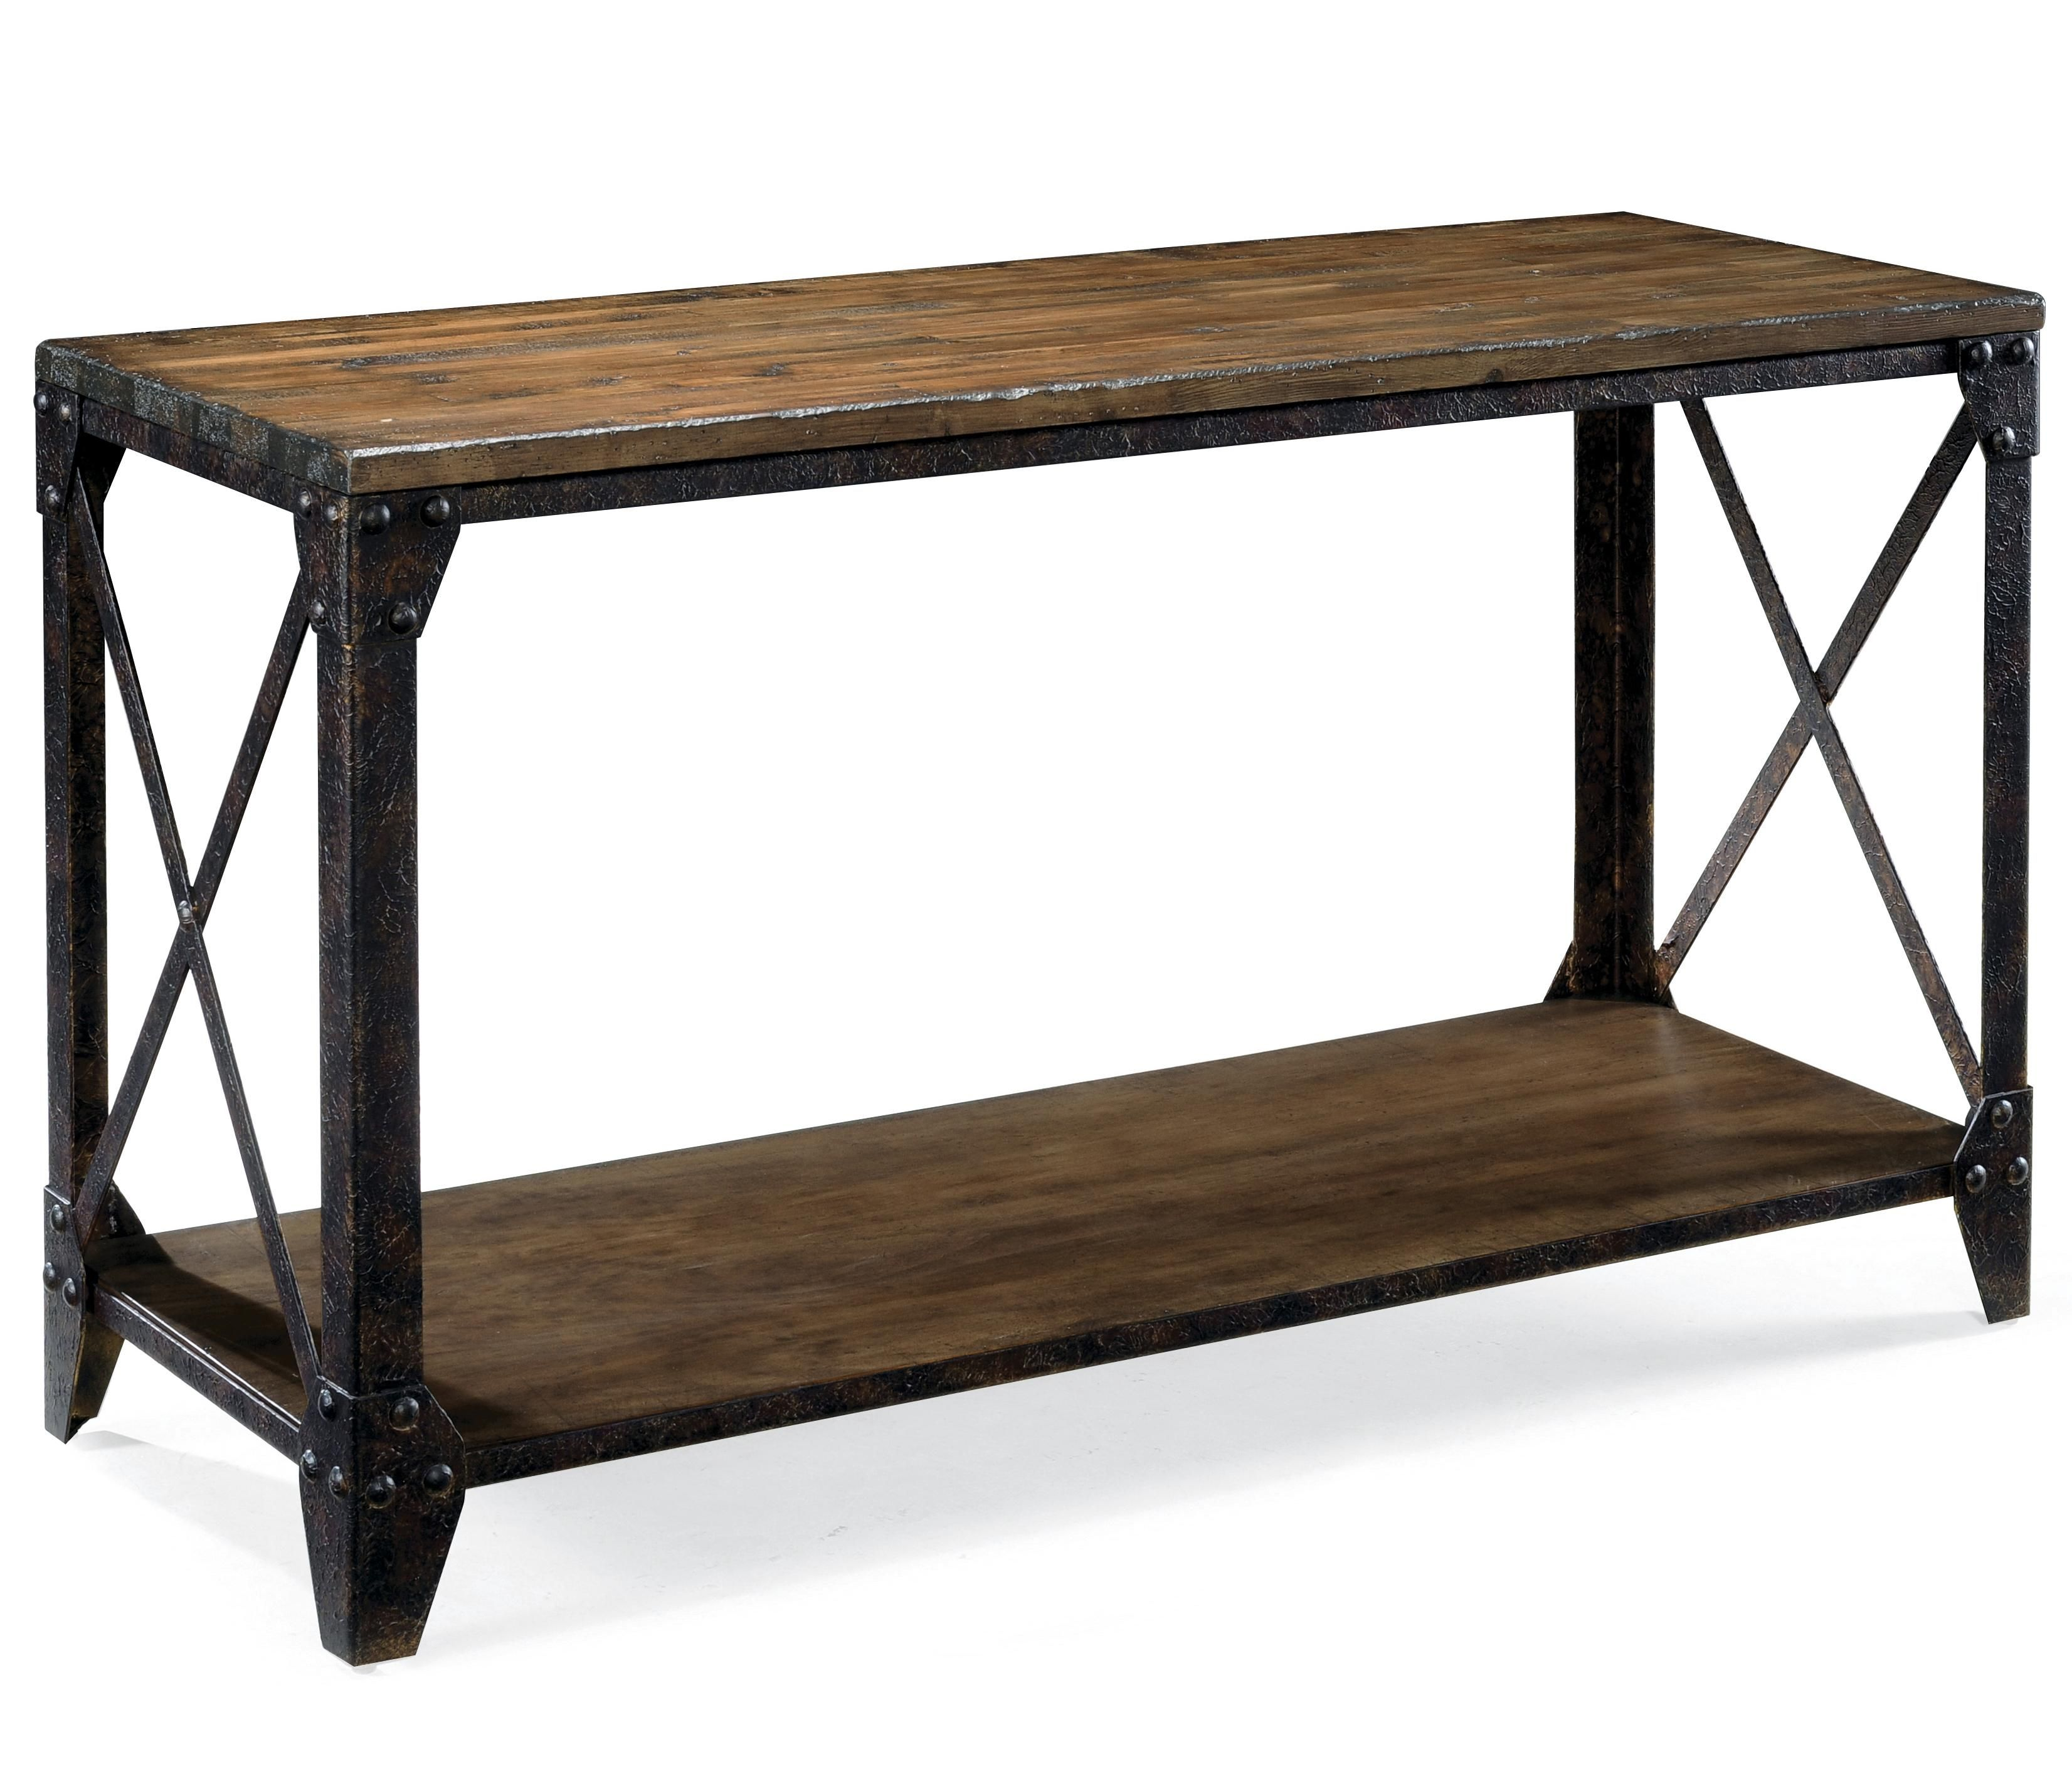 Pinebrook Rectangular Sofa Table With Rustic Iron Legs By Magnussen Home Great